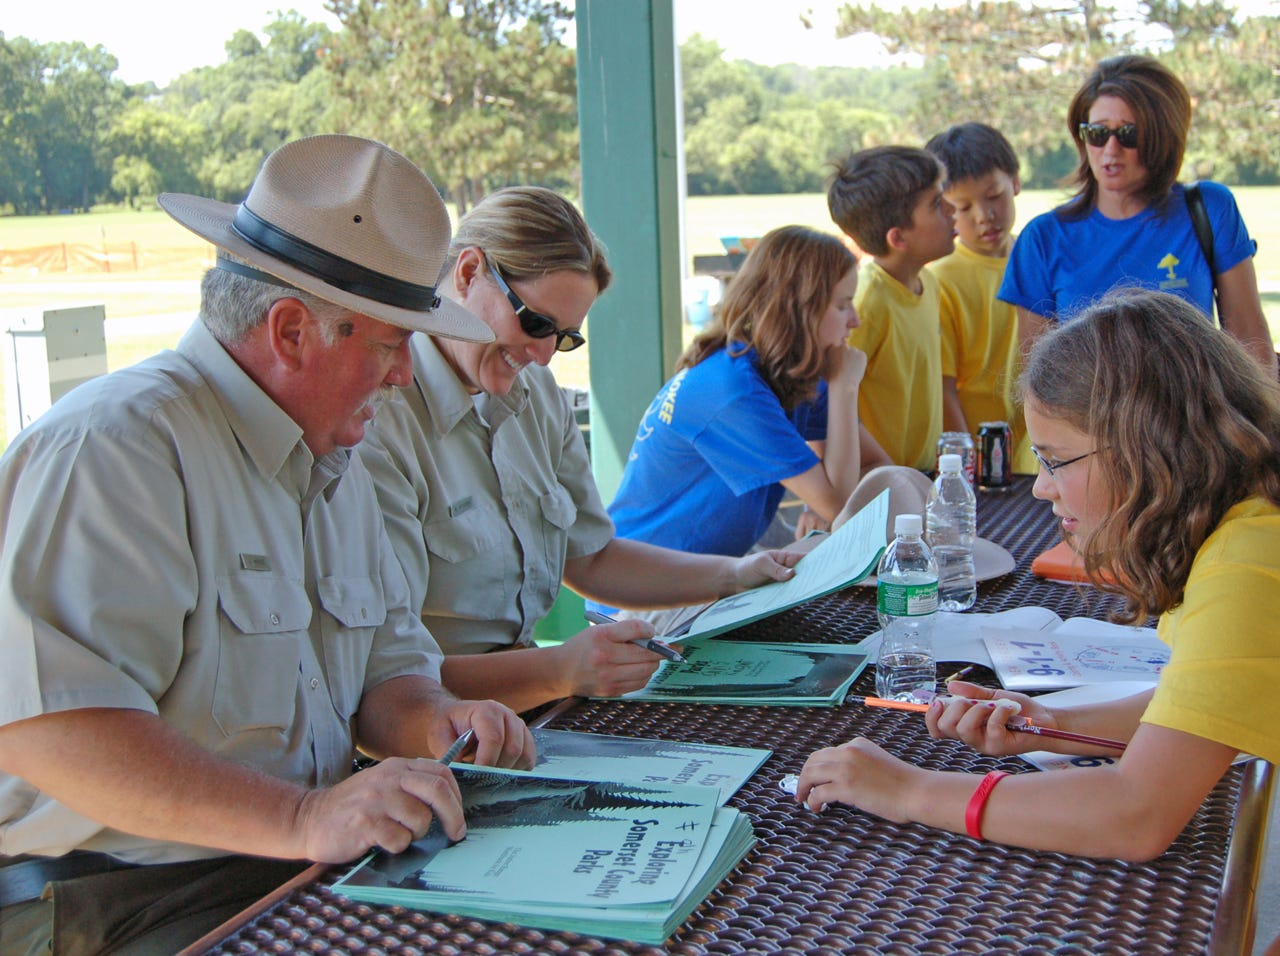 Junior Rangers work with Park Rangers, learning about the environment in the Somerset County parks.